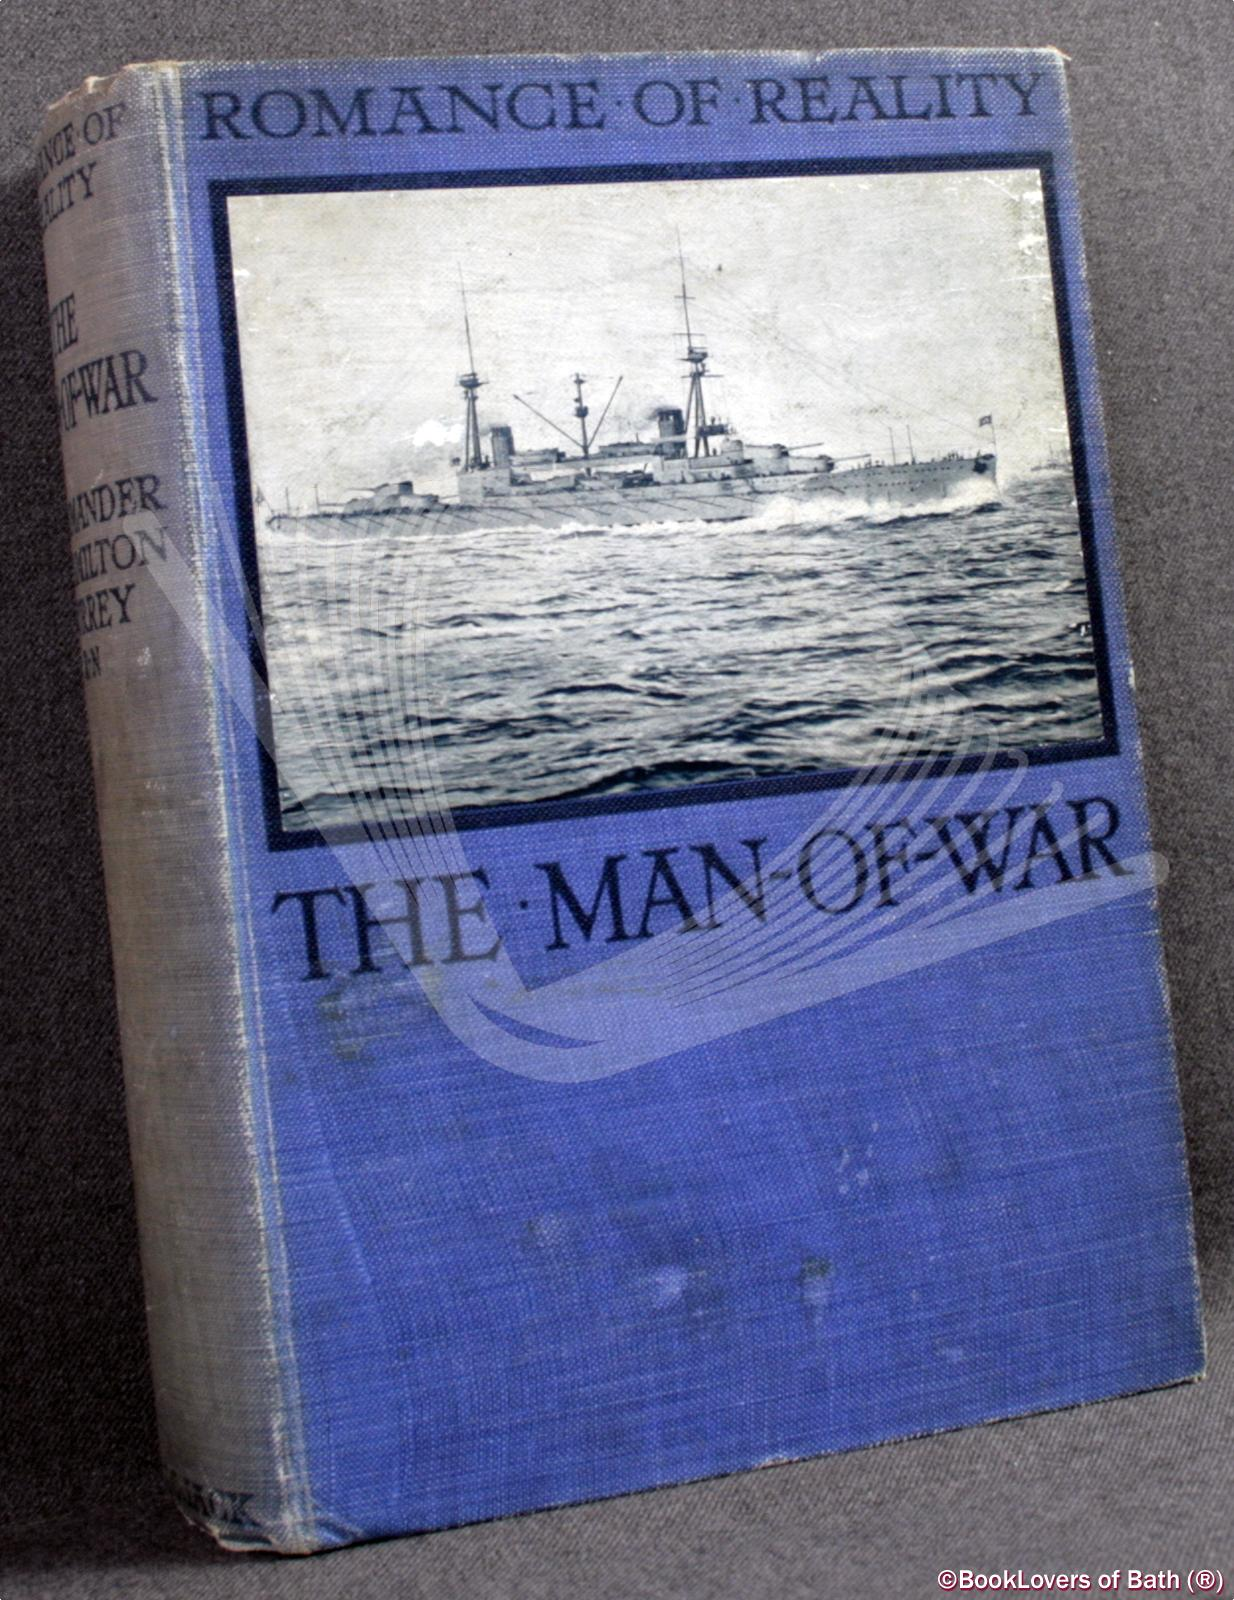 The Man-Of-War: What She Has Done, and What She Is Doing - E. [Edward] Hamilton Currey